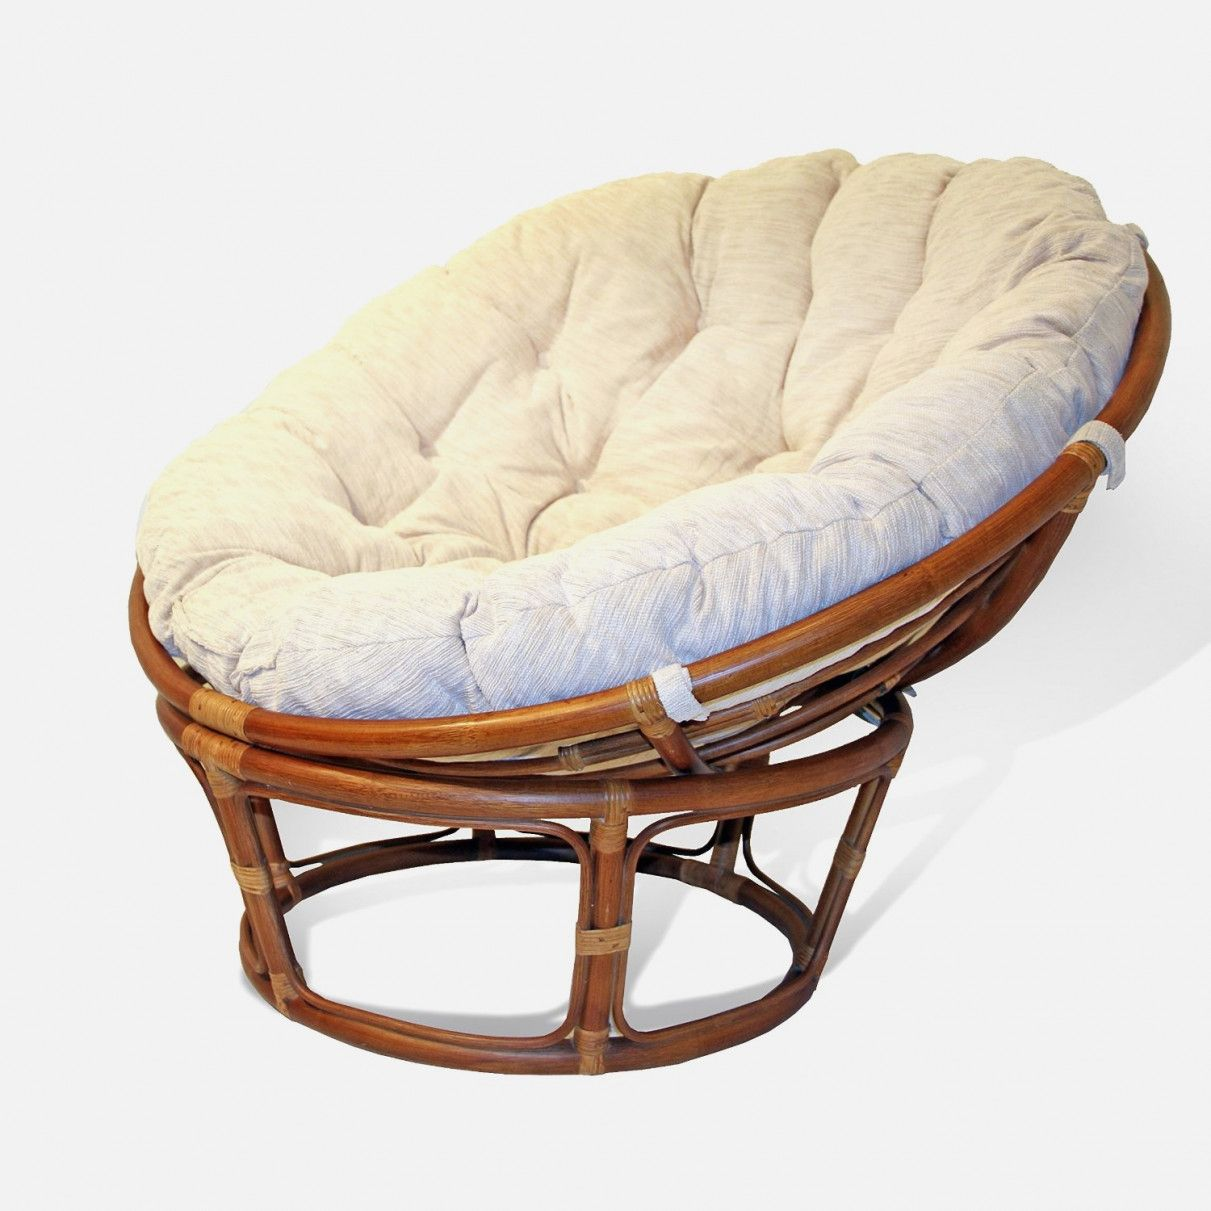 Big Round Bamboo Chair Home Office Furniture Ideas Check More At